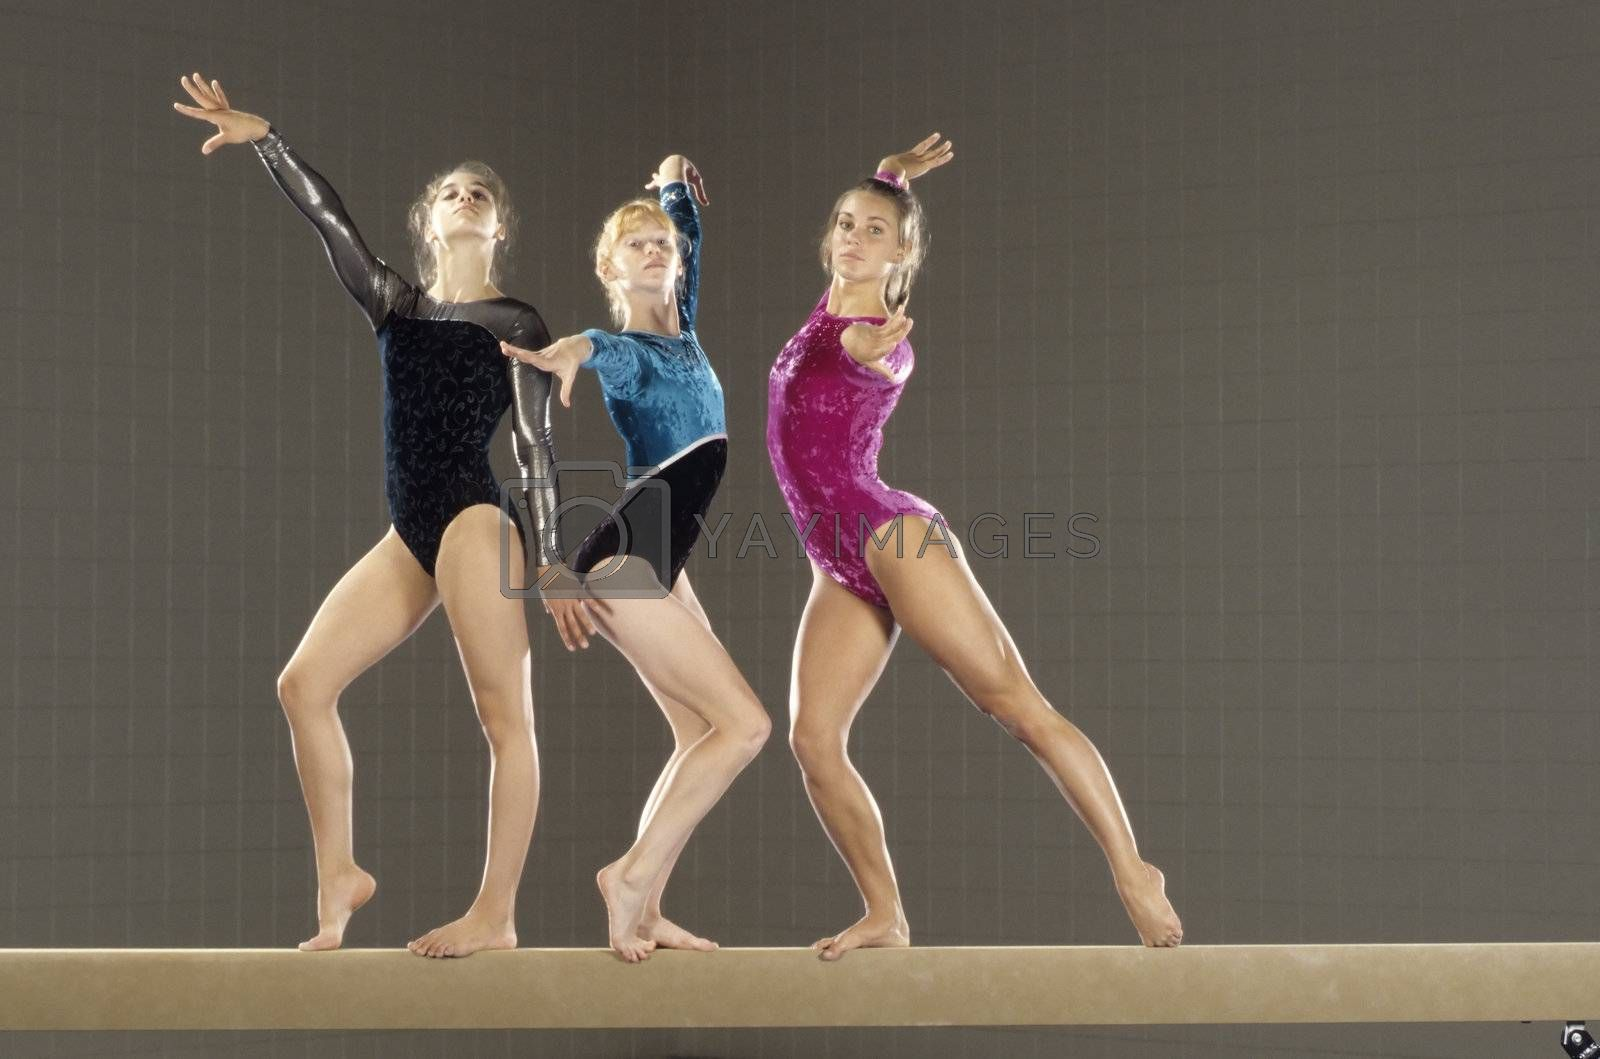 Attractive young female gymnasts pose on the balance beam